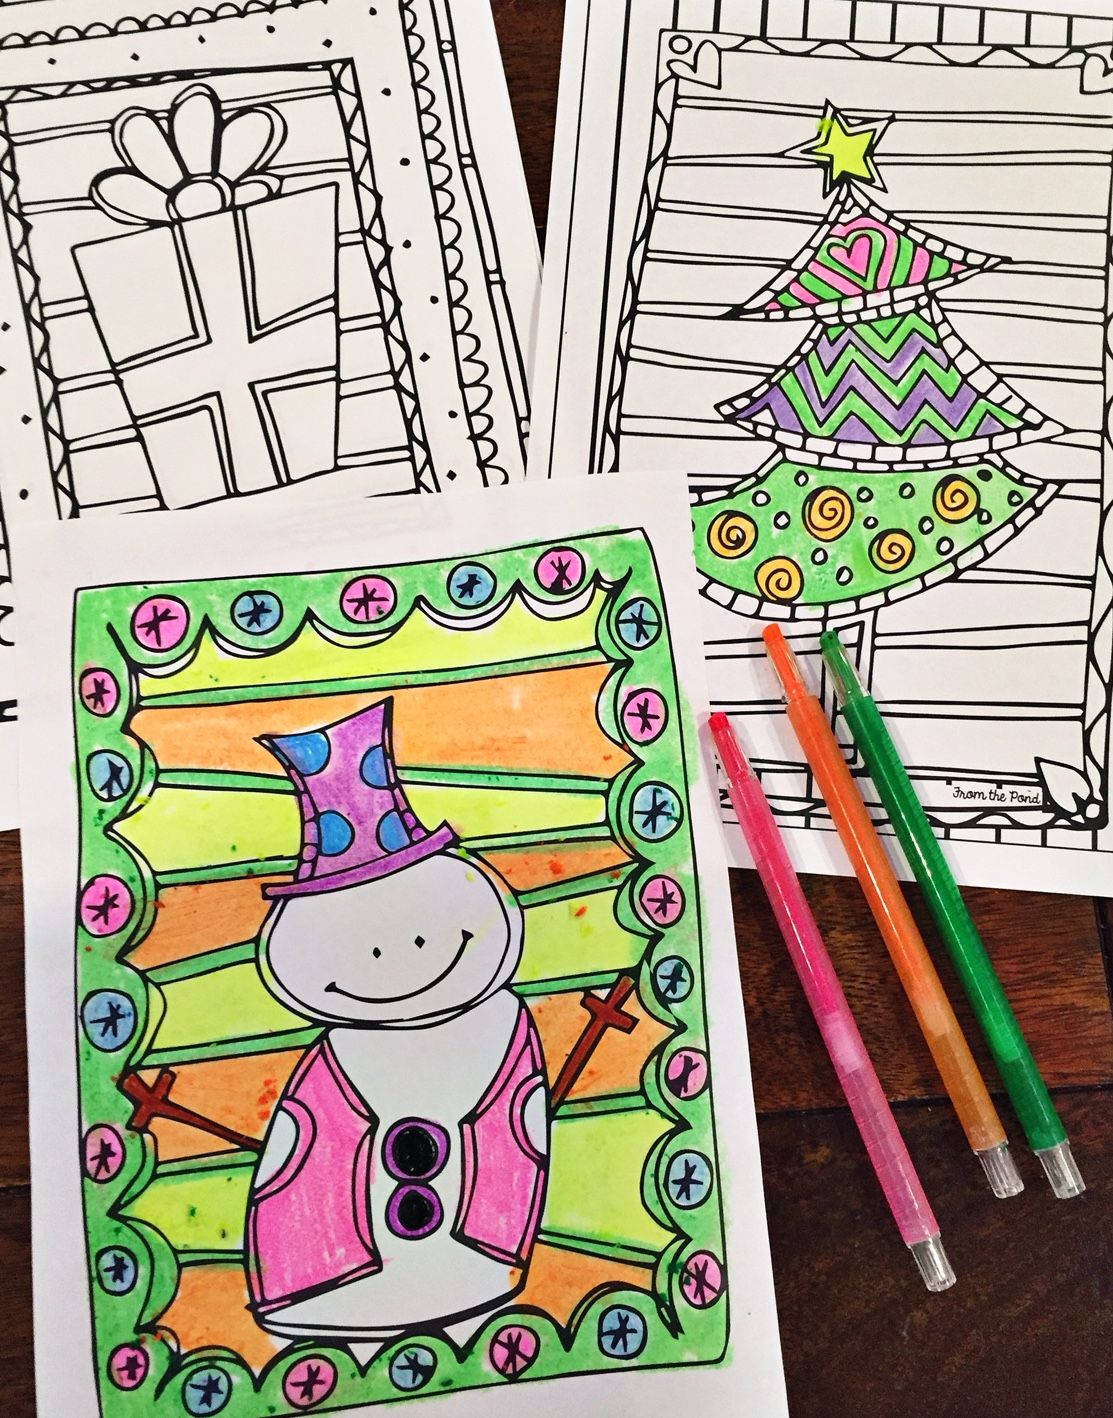 Christmas Coloring Pages | Pre-school, Activities and School lessons